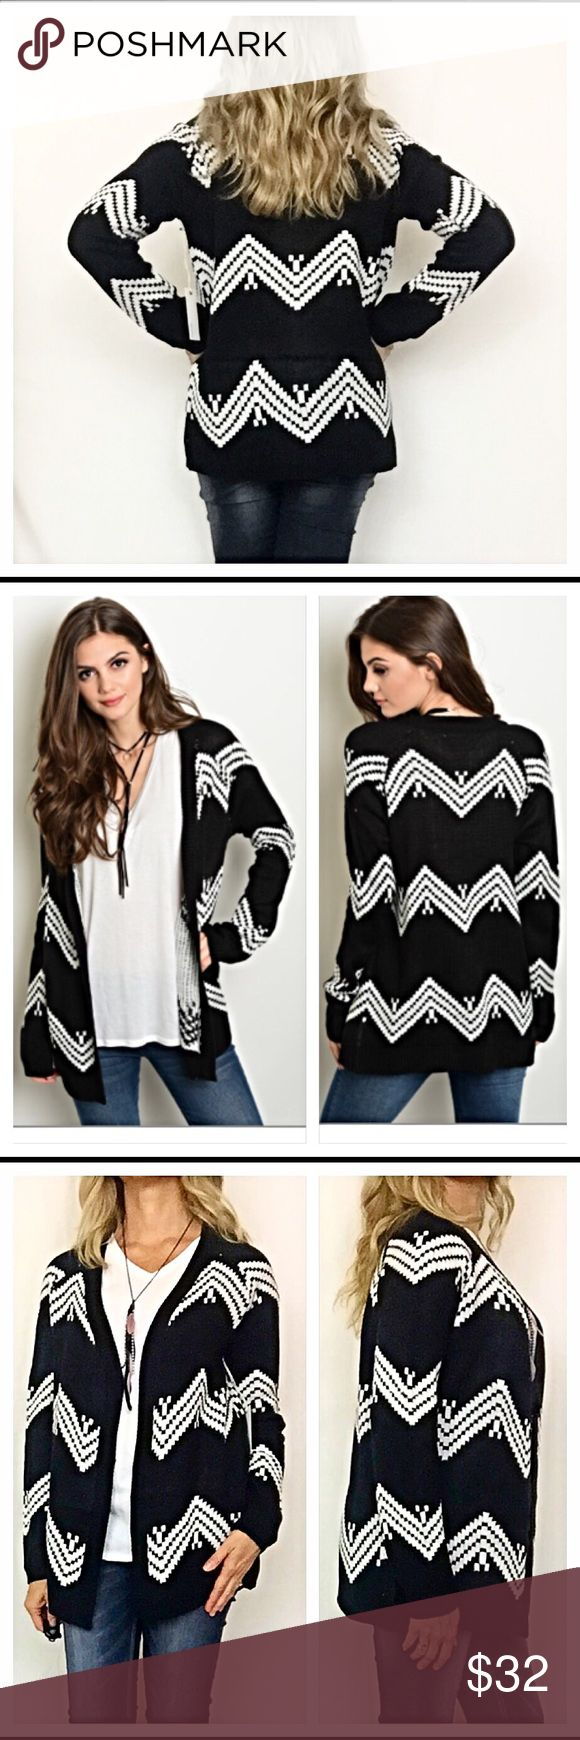 "Chevron sweater cardigan top S M L Really love this chevron zig zag cozy cardigan top in black & white. Slip into comfort & style this season with this open front knit sweater. 100% acrylic. Also available in black & taupe in a separate listing   Small 2/4 Bust 40"" Length 26"" Medium 6/8 Bust 41"" Length 27"" Large 10/12  Bust 42"" Length 28"" Tops"